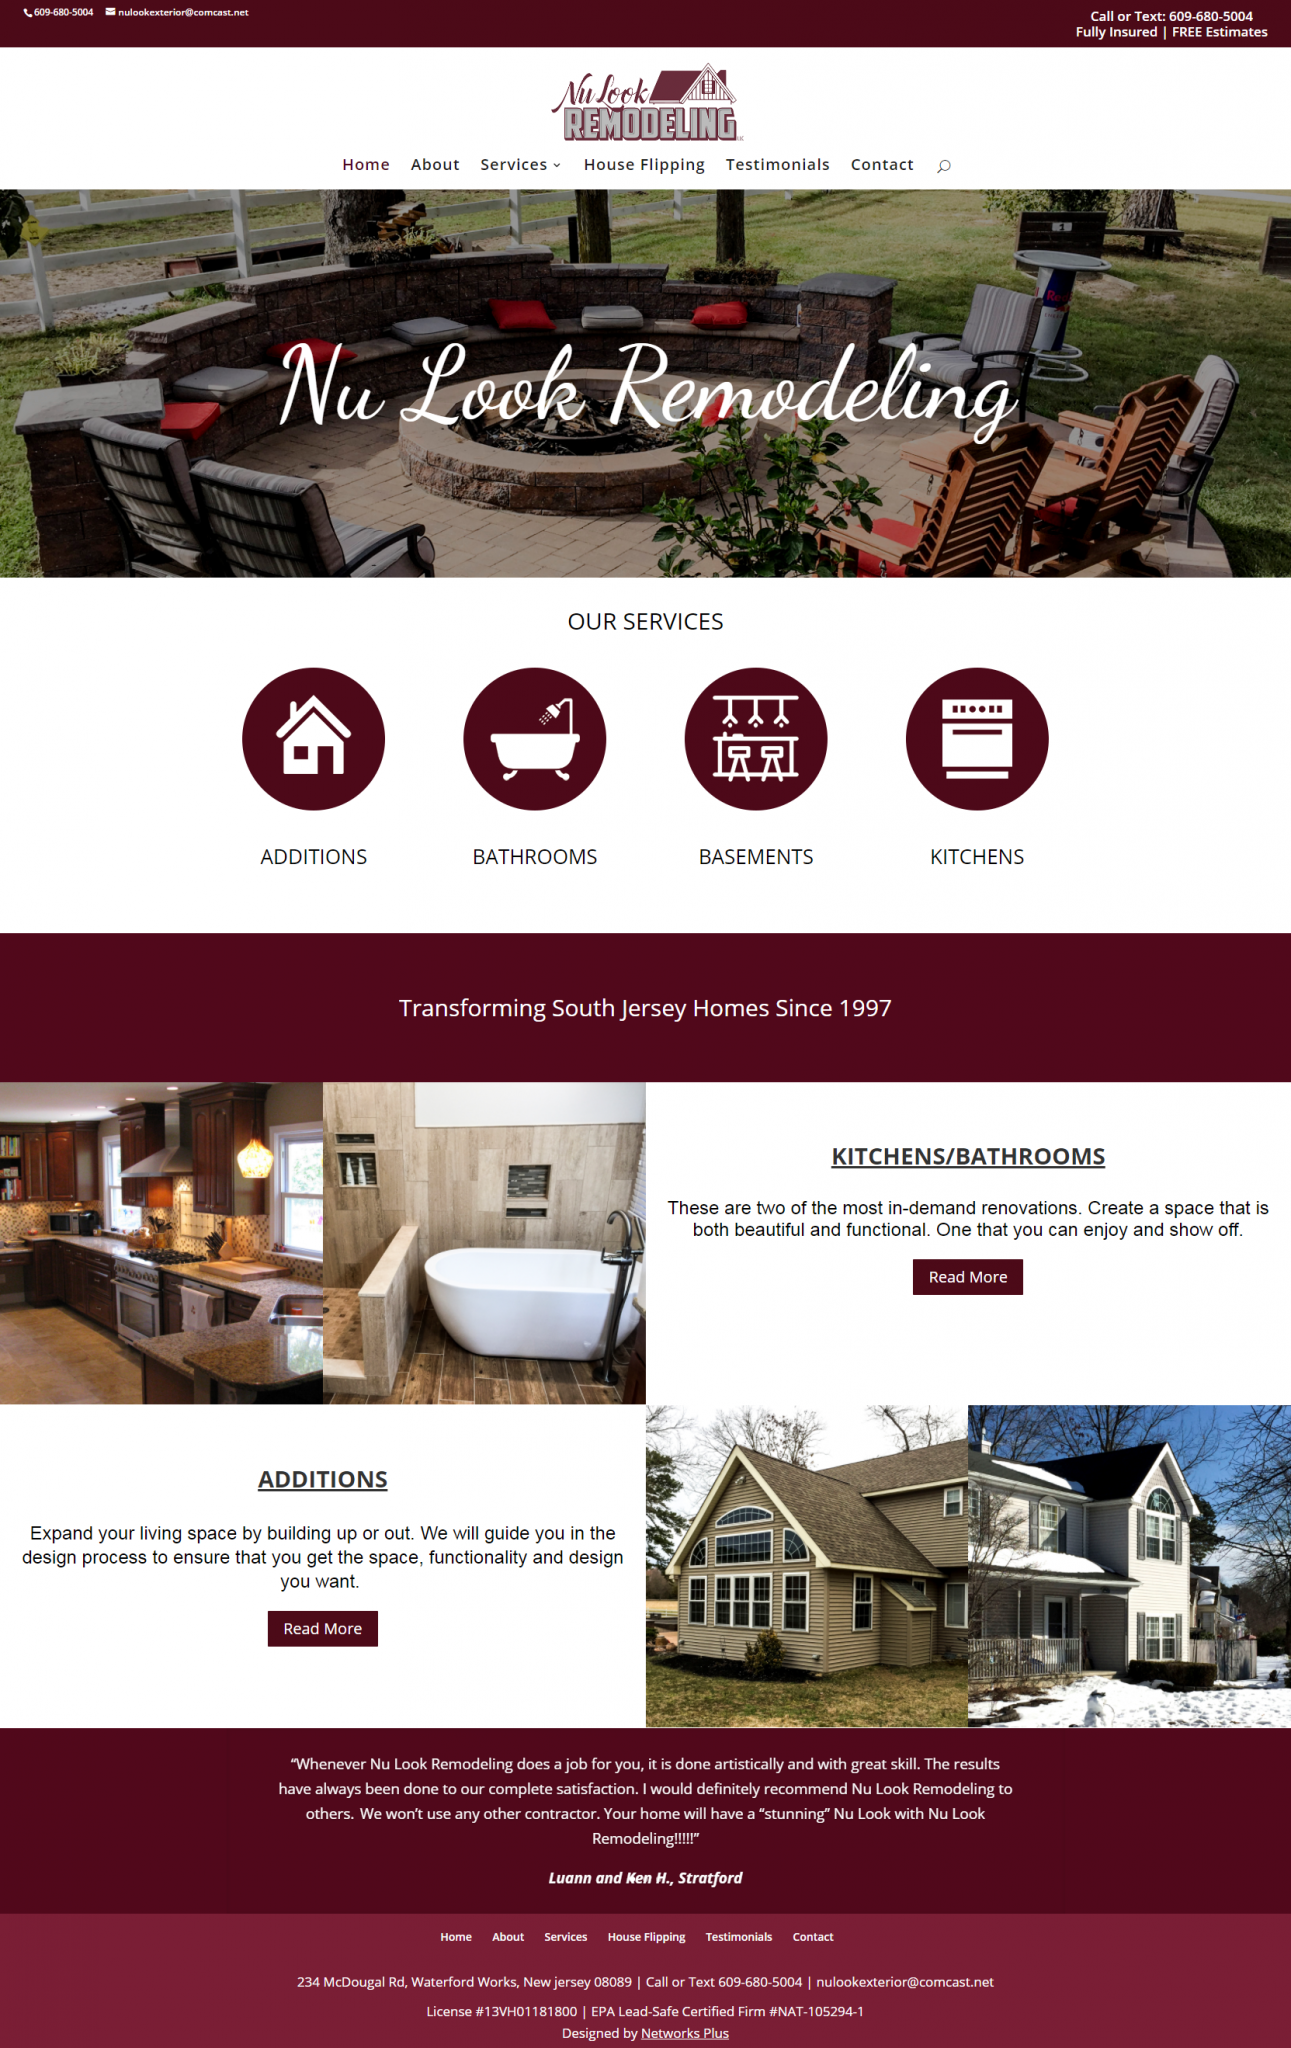 Nu look home design cherry hill reviews 100 nu look home design cherry hill reviews - Nu look home design ...